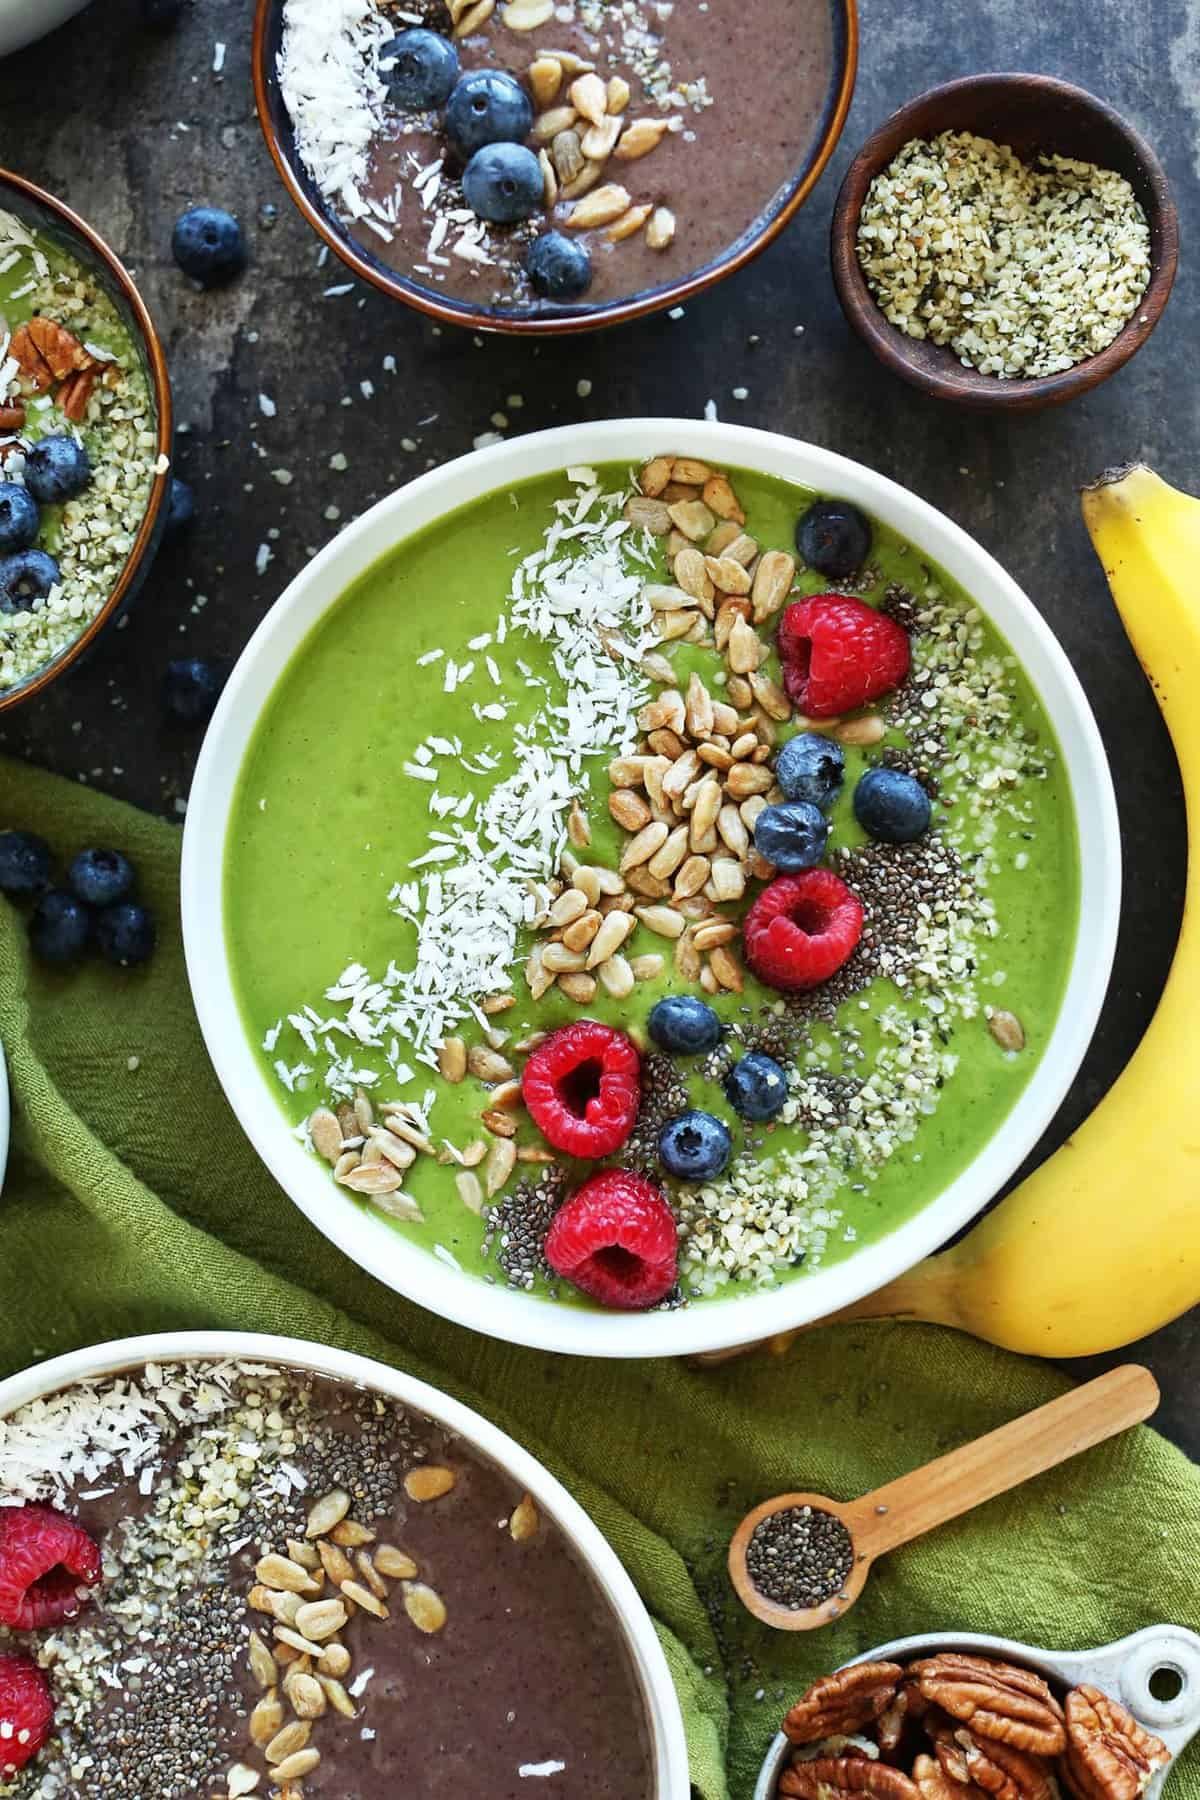 Need Healthy Recipe Inspiration? Check Out These 15 Superfood Bowl Recipes  For Different Mealbinations